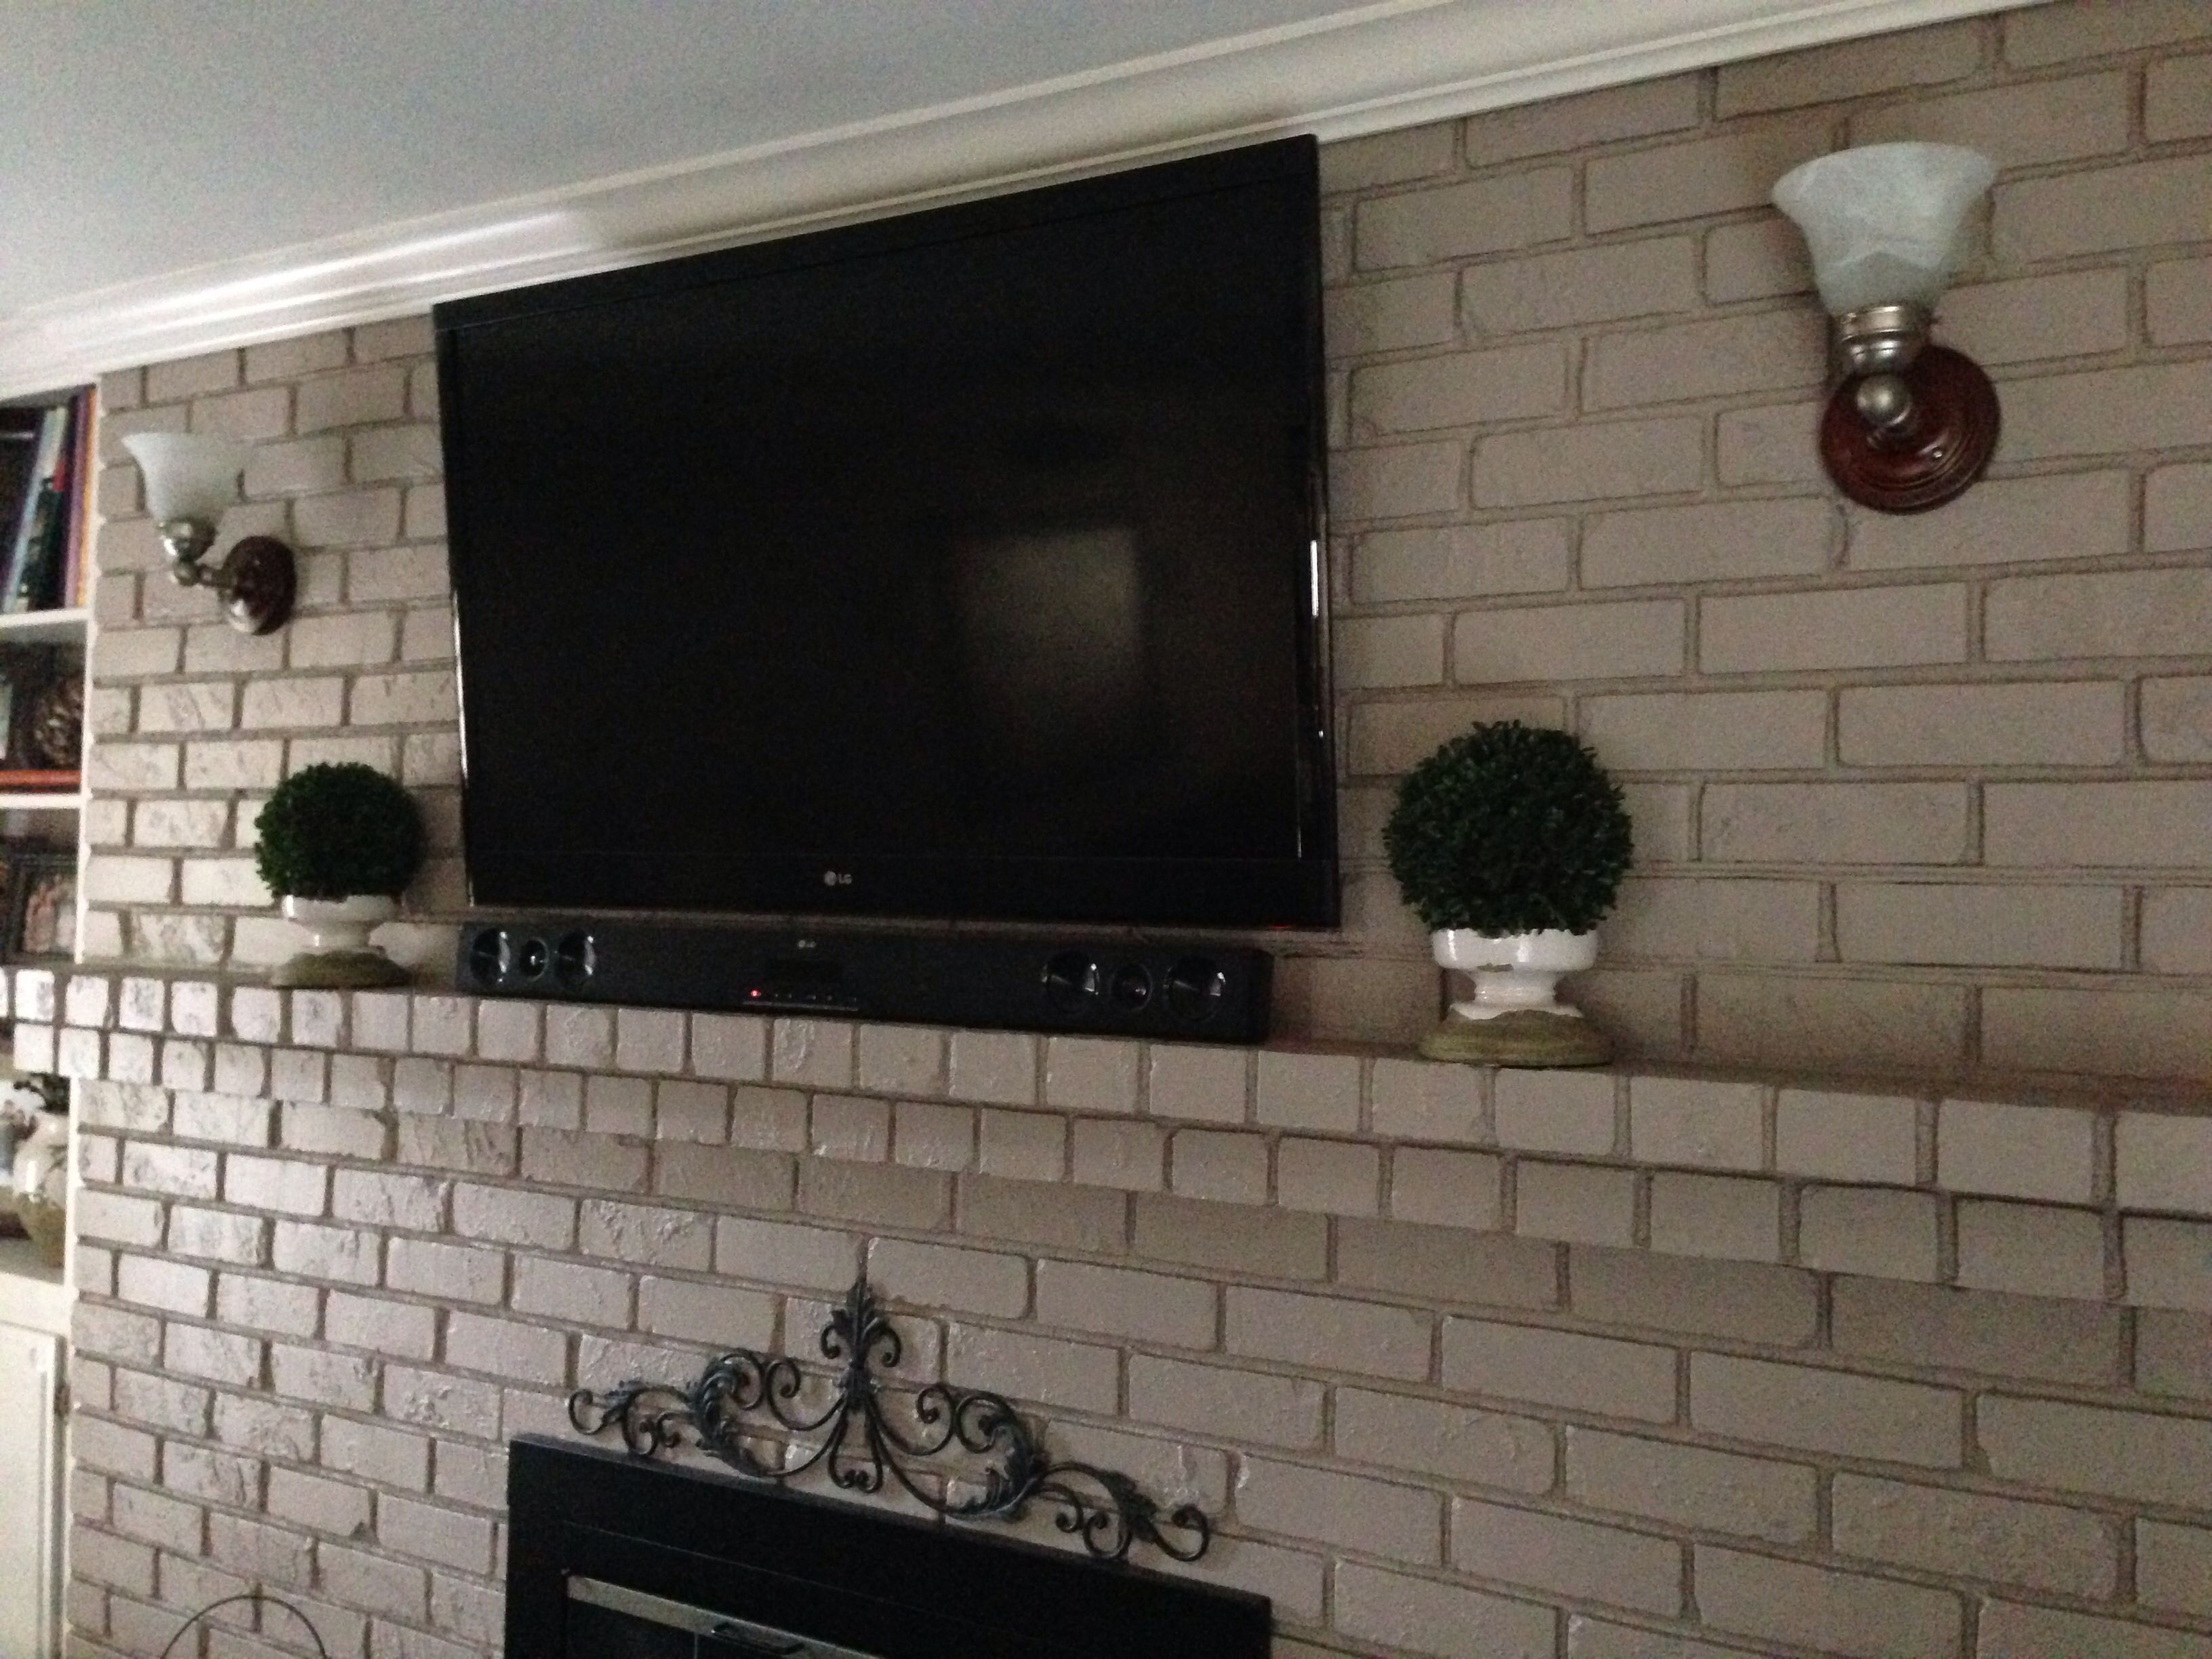 Yes you can mount your tv to your brick fireplace without the wires showing The wires are